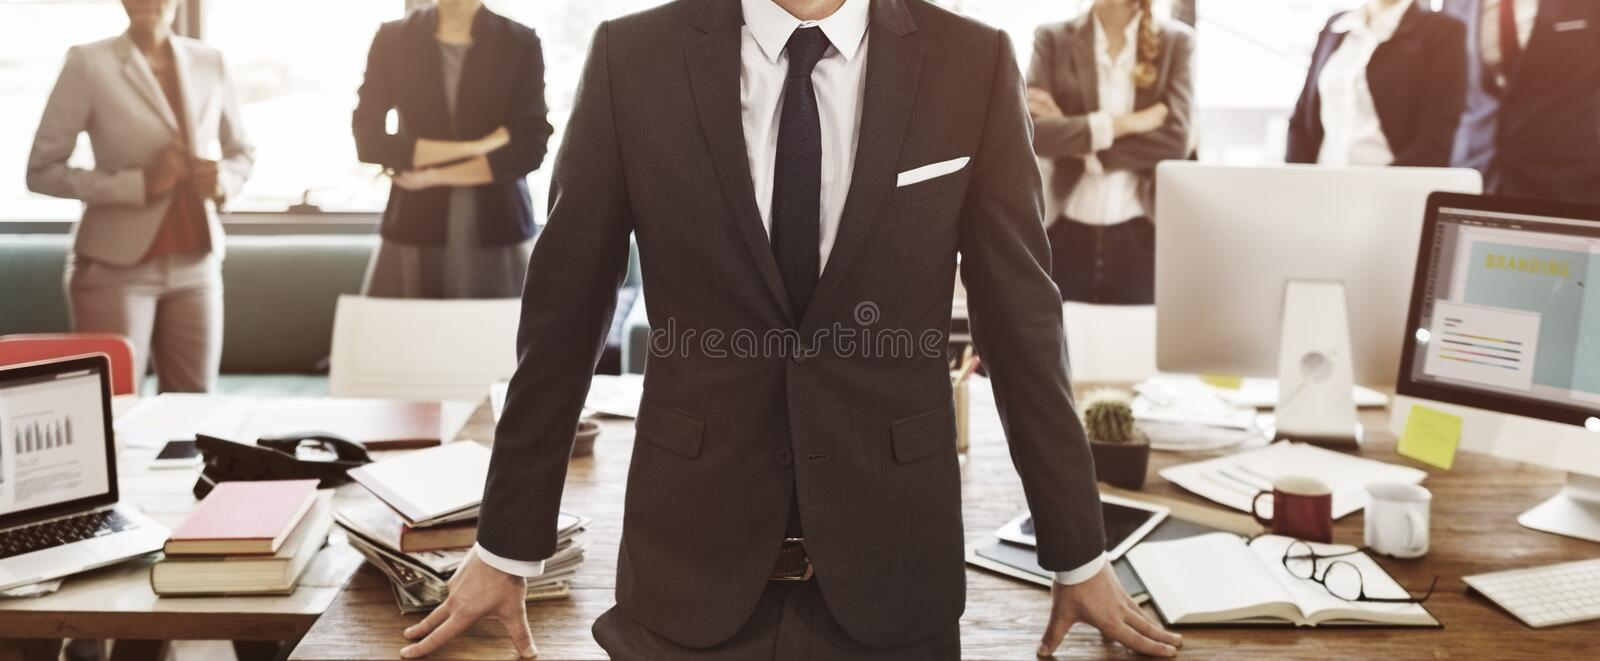 Business Collaboration Colleagues Team Corporate Concept royalty free stock photo